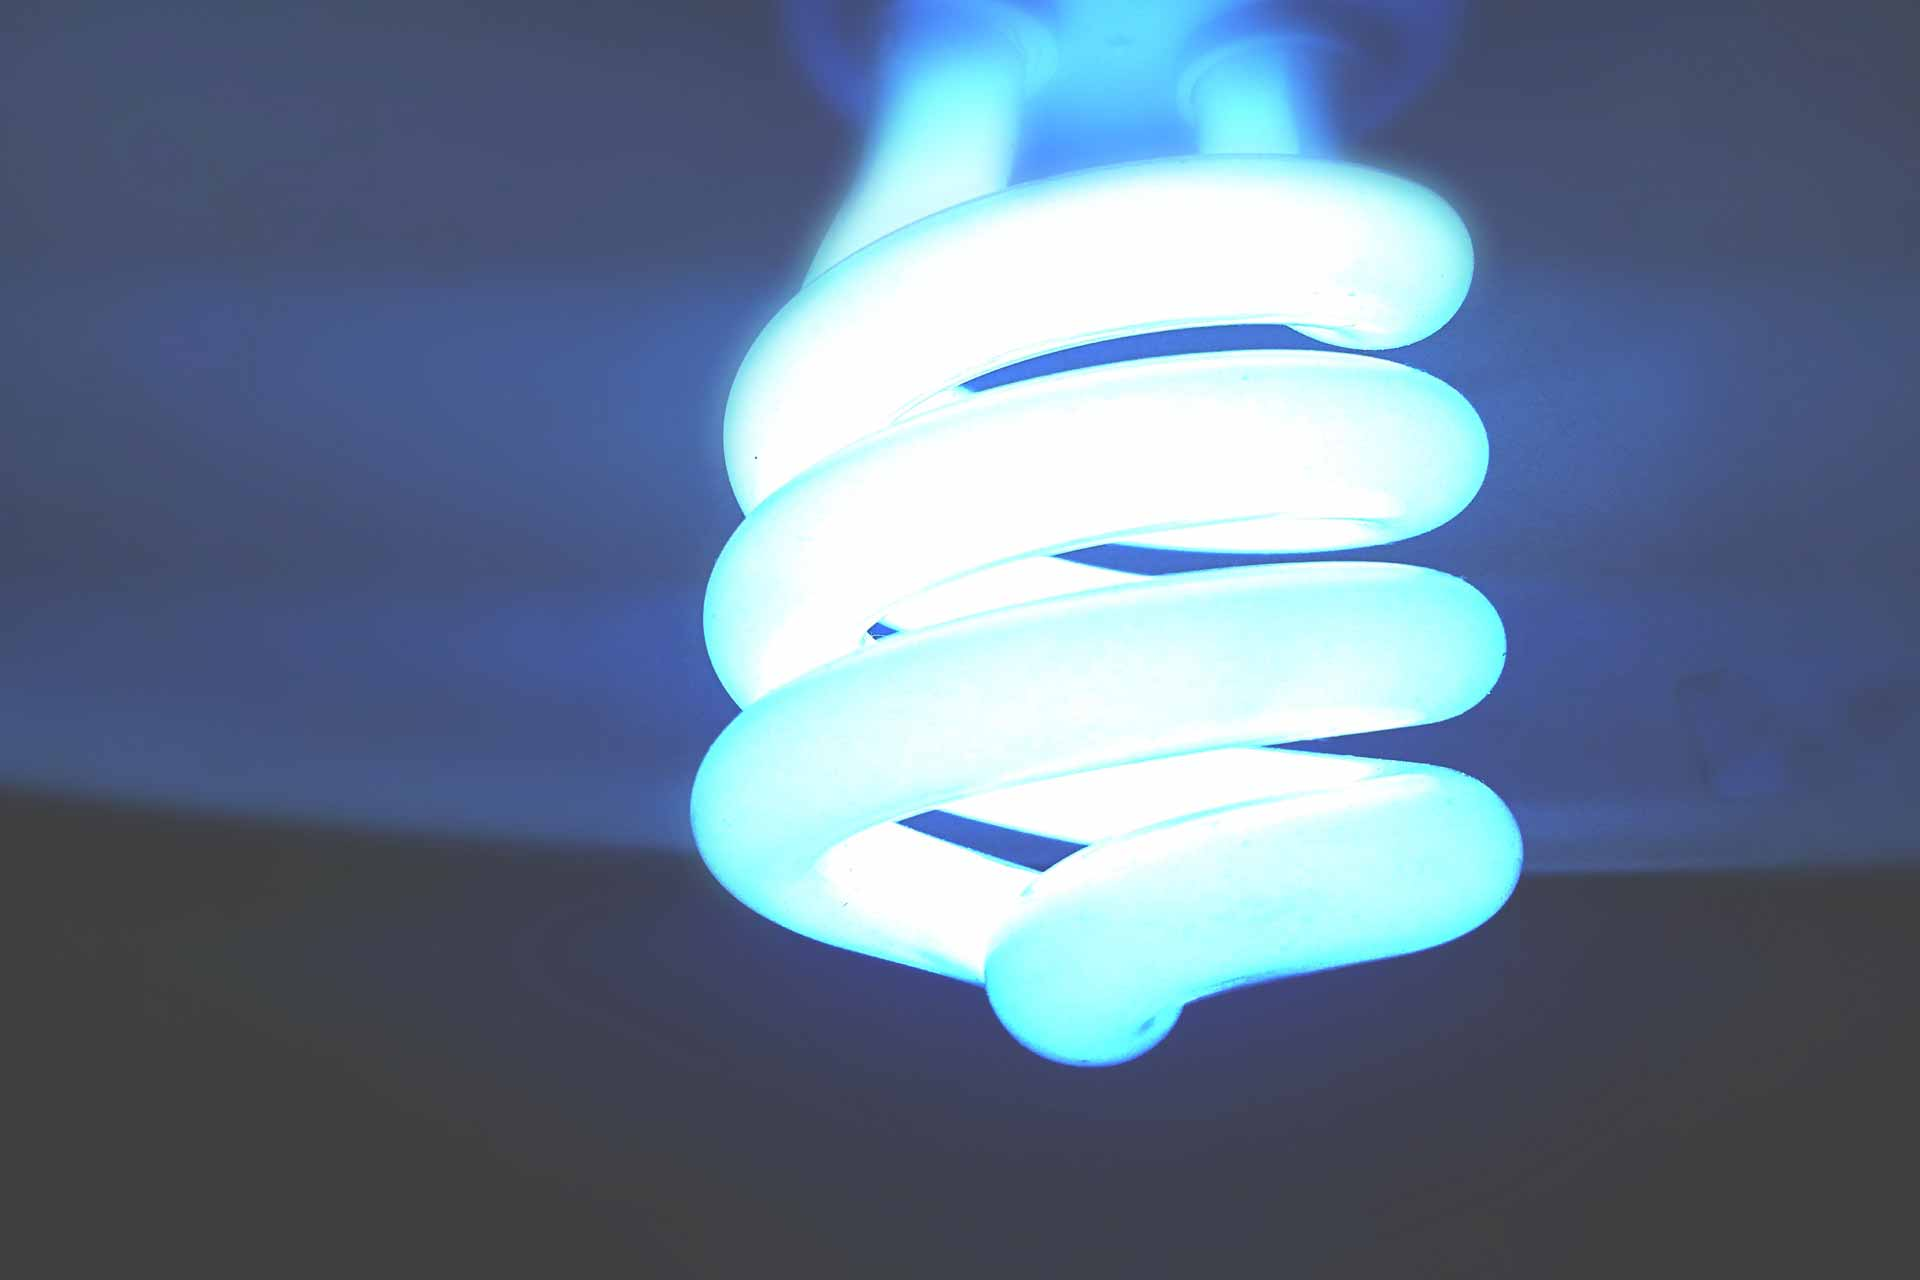 5 Energy Efficient Upgrades that You Can Do in Your Home